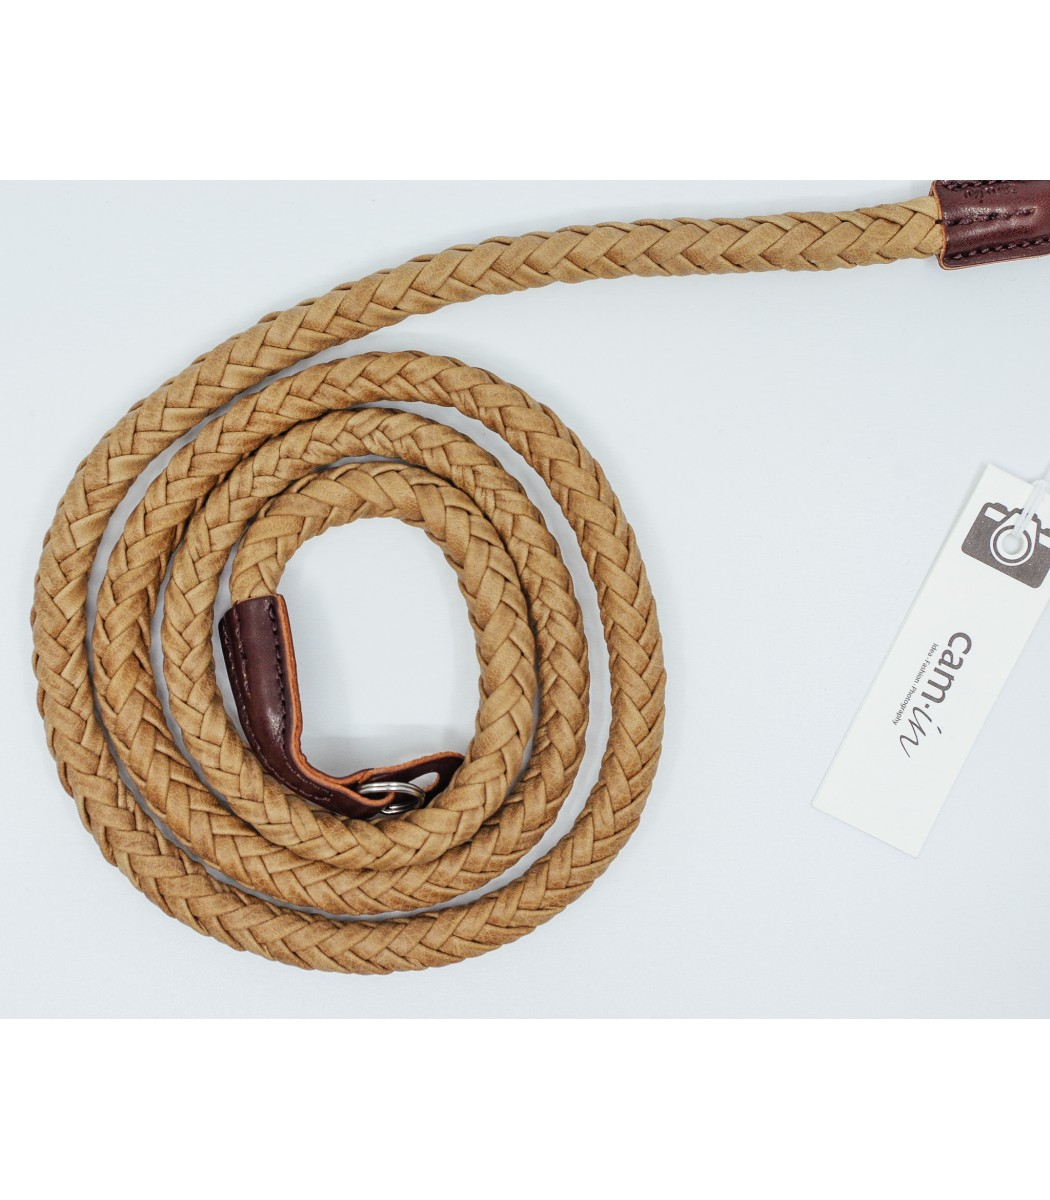 128cm Black /& Grey Woven Leather Rope Camera Strap w// Ring Connection by Cam-in